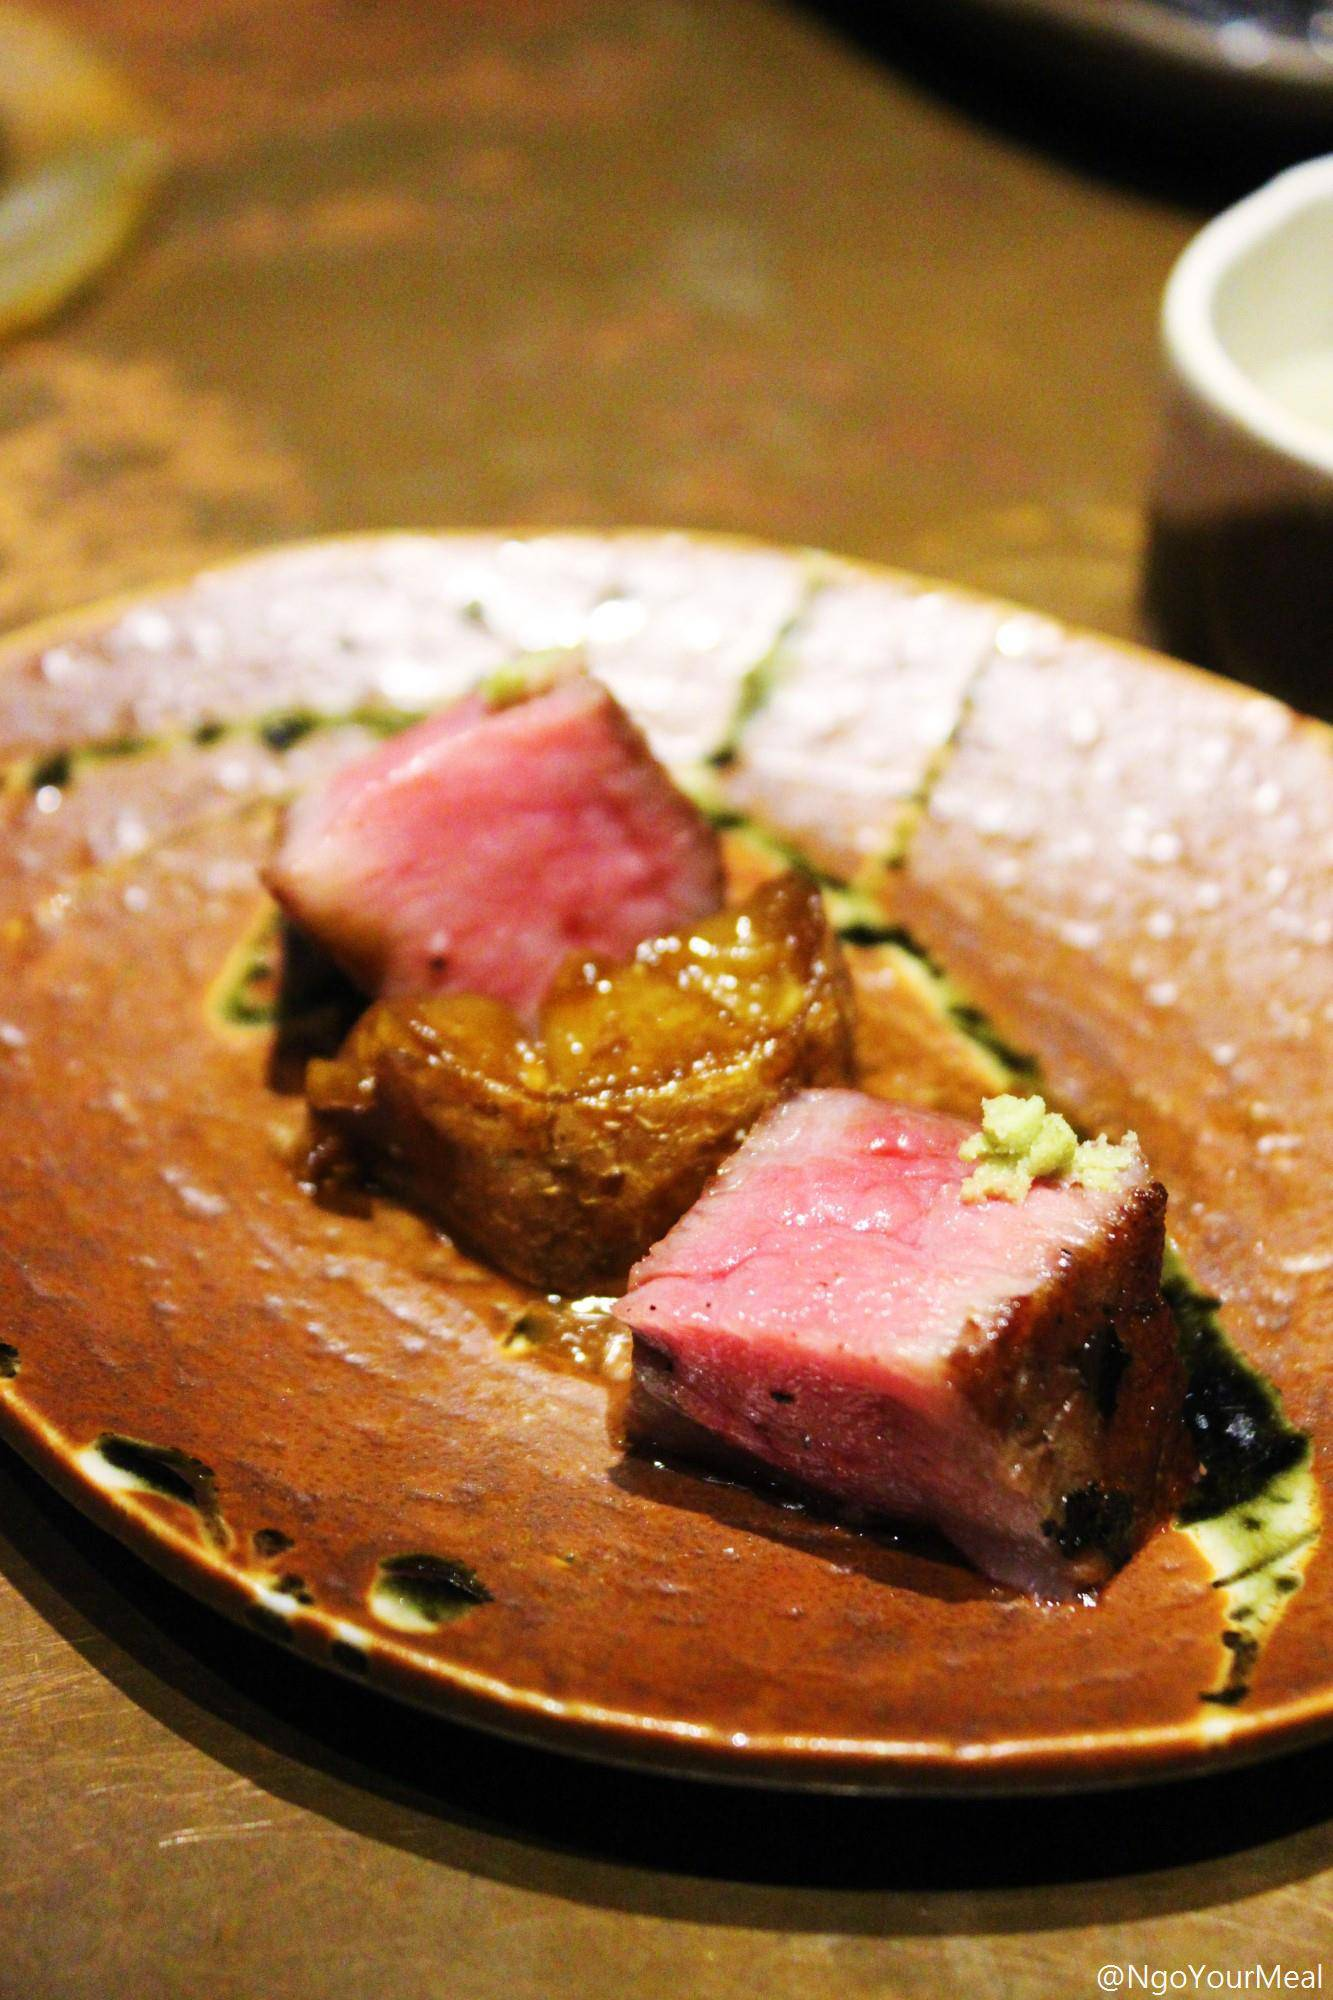 Matsusaka Beef with Cabrales Cheese Glazed Potato at Mecha Uma in the Philippines